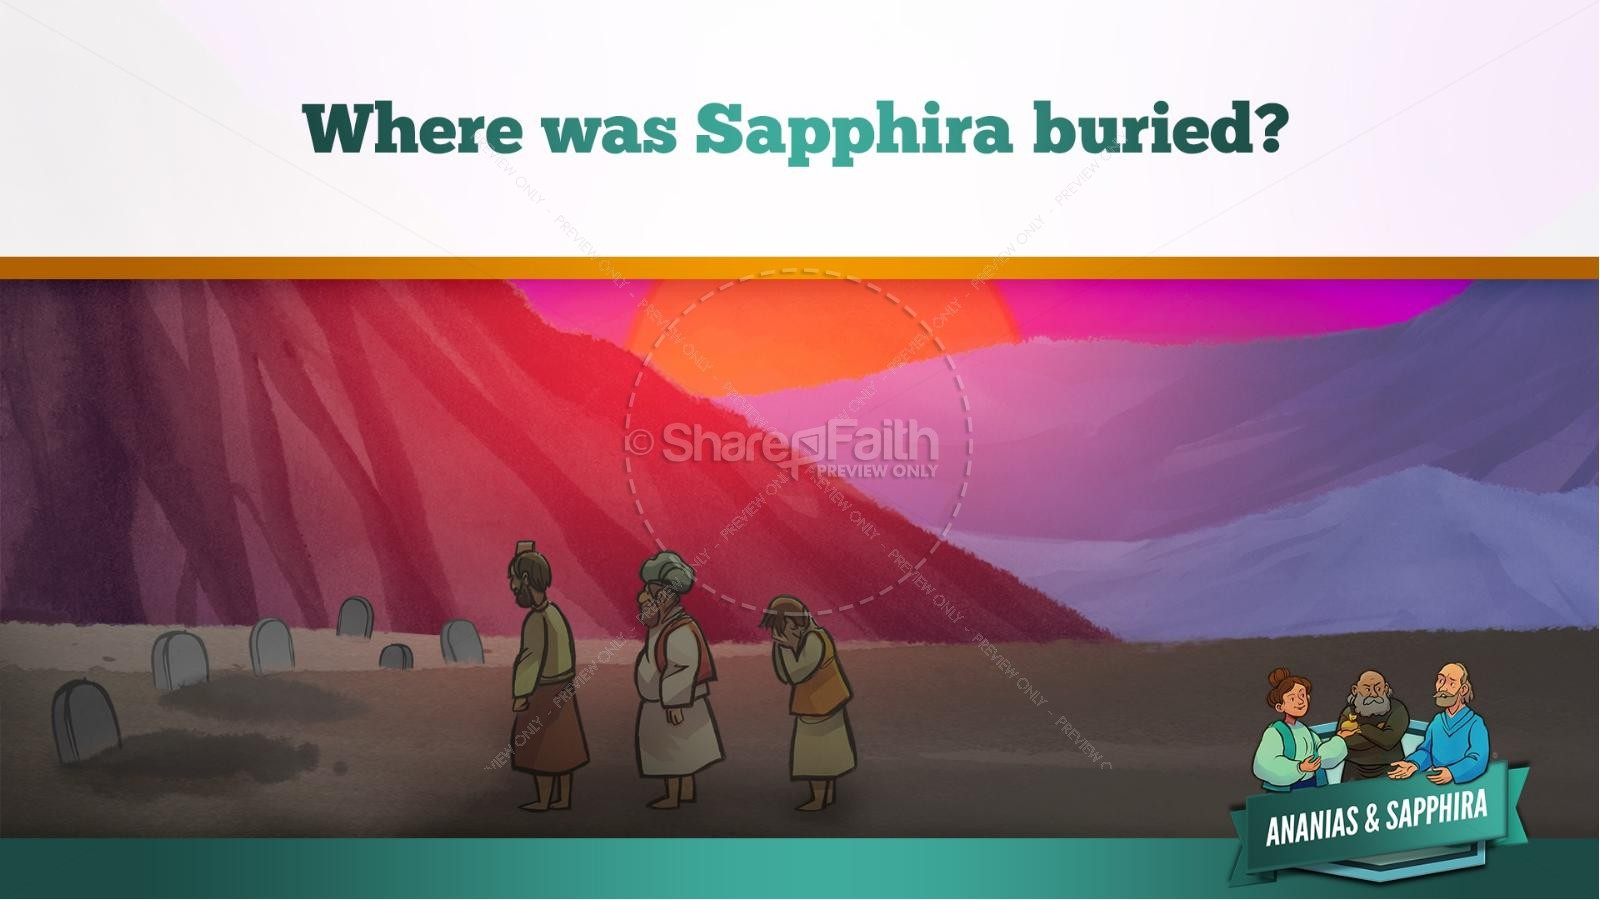 Acts 5 Ananias and Sapphira Kids Bible Stories | slide 45